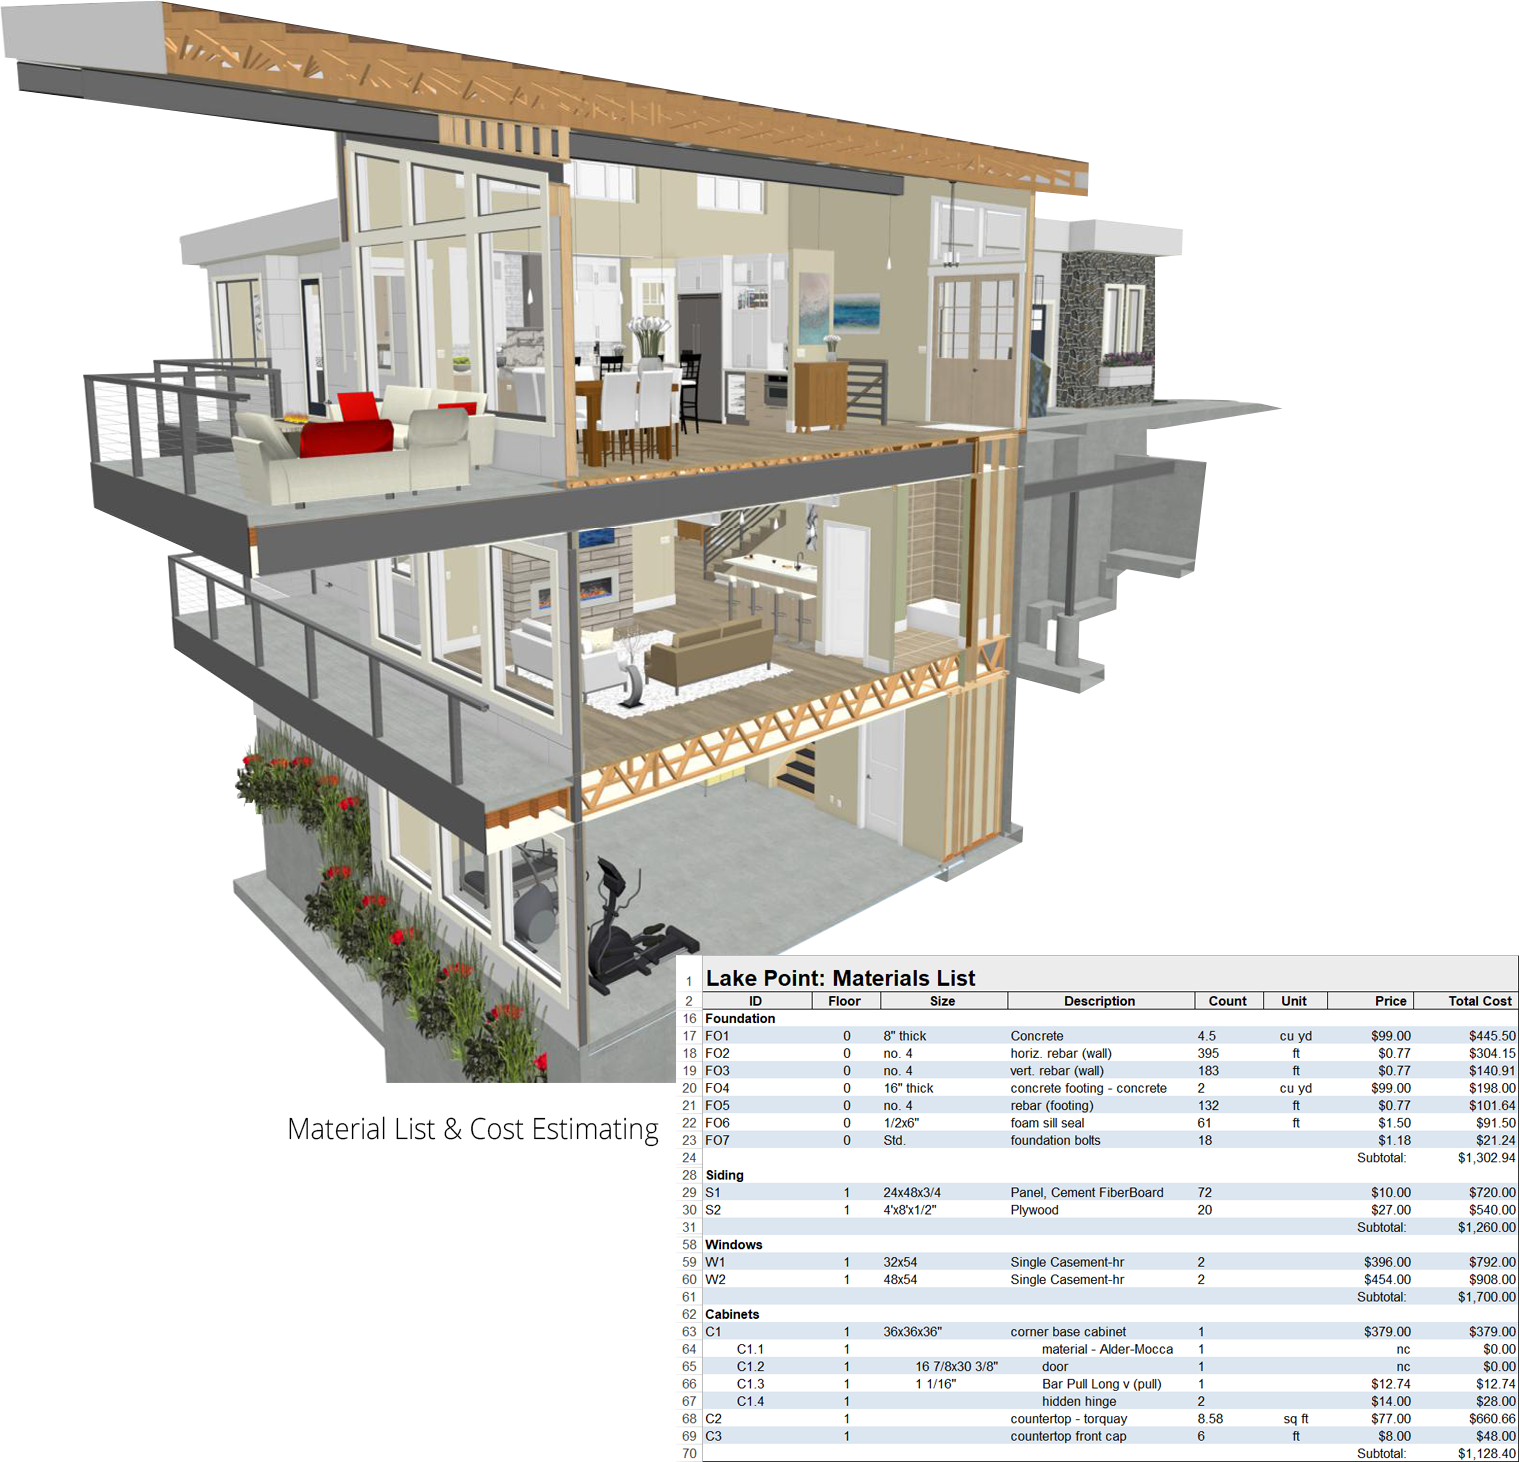 Home addition remodeling, framing, materials lists and cost estimating